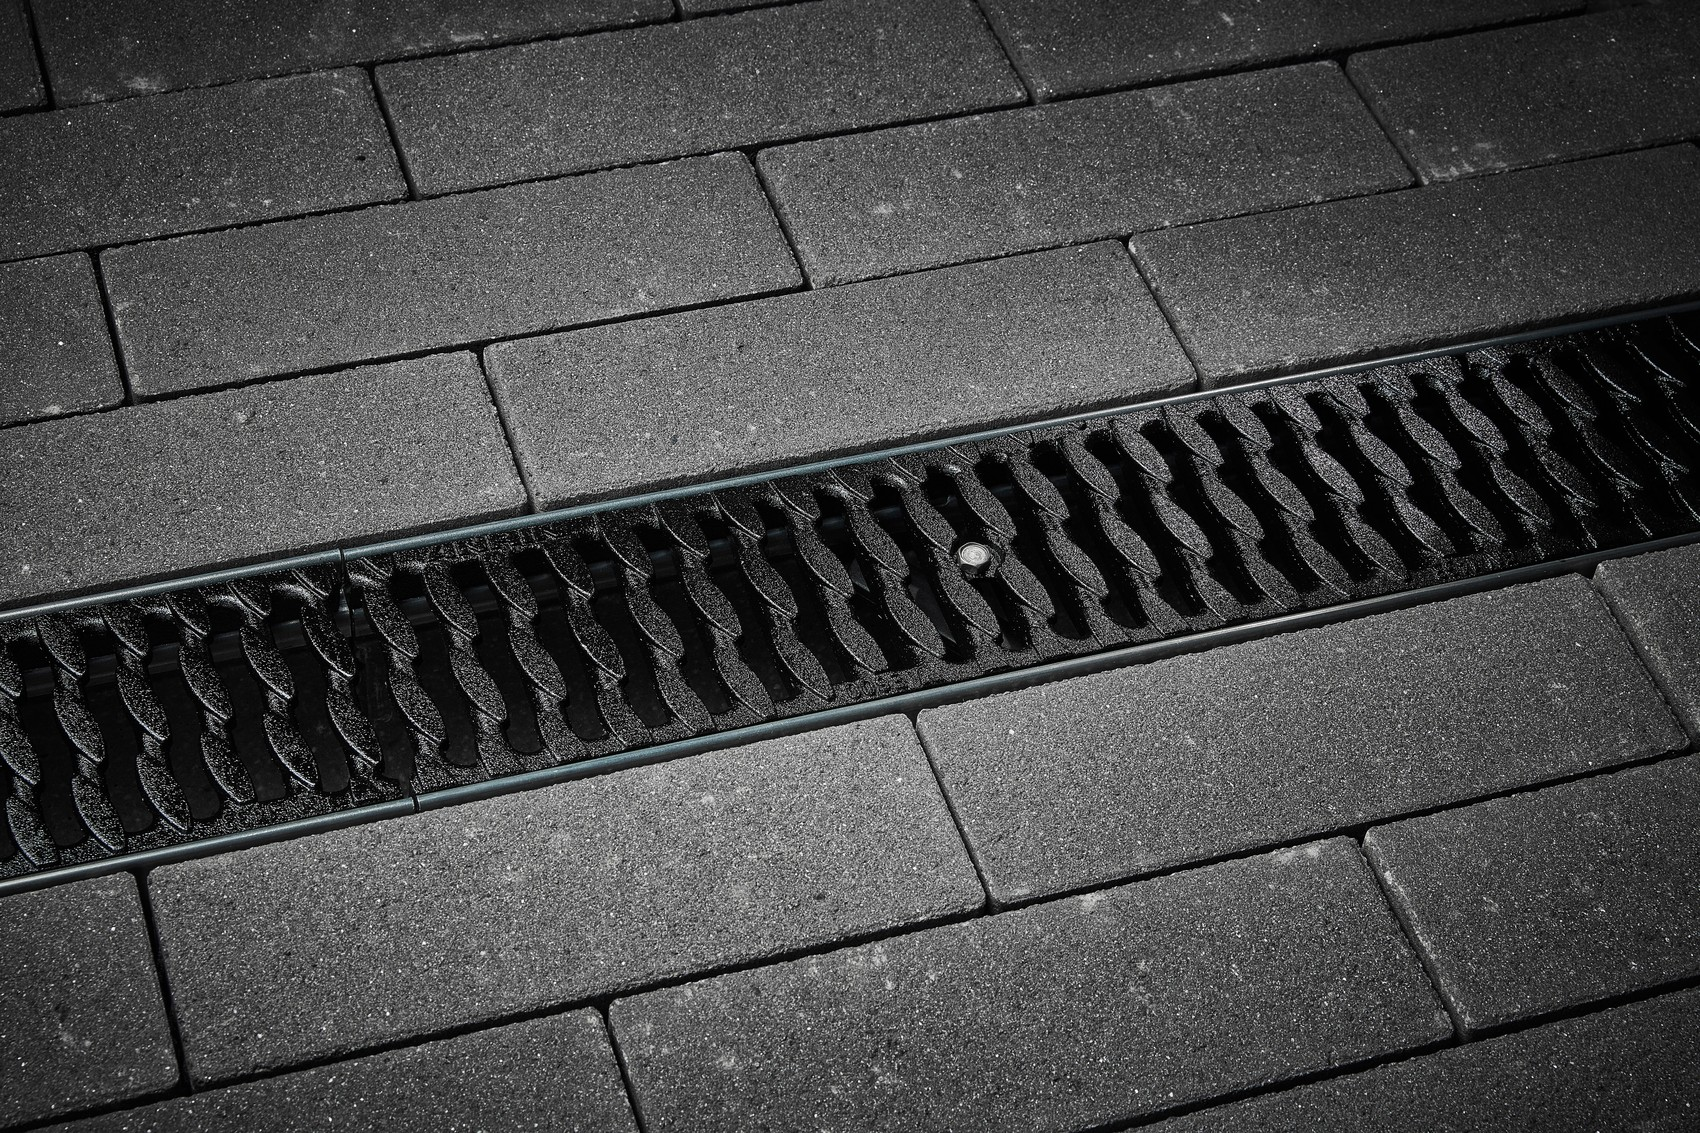 Slotted grating OvalGrip Design